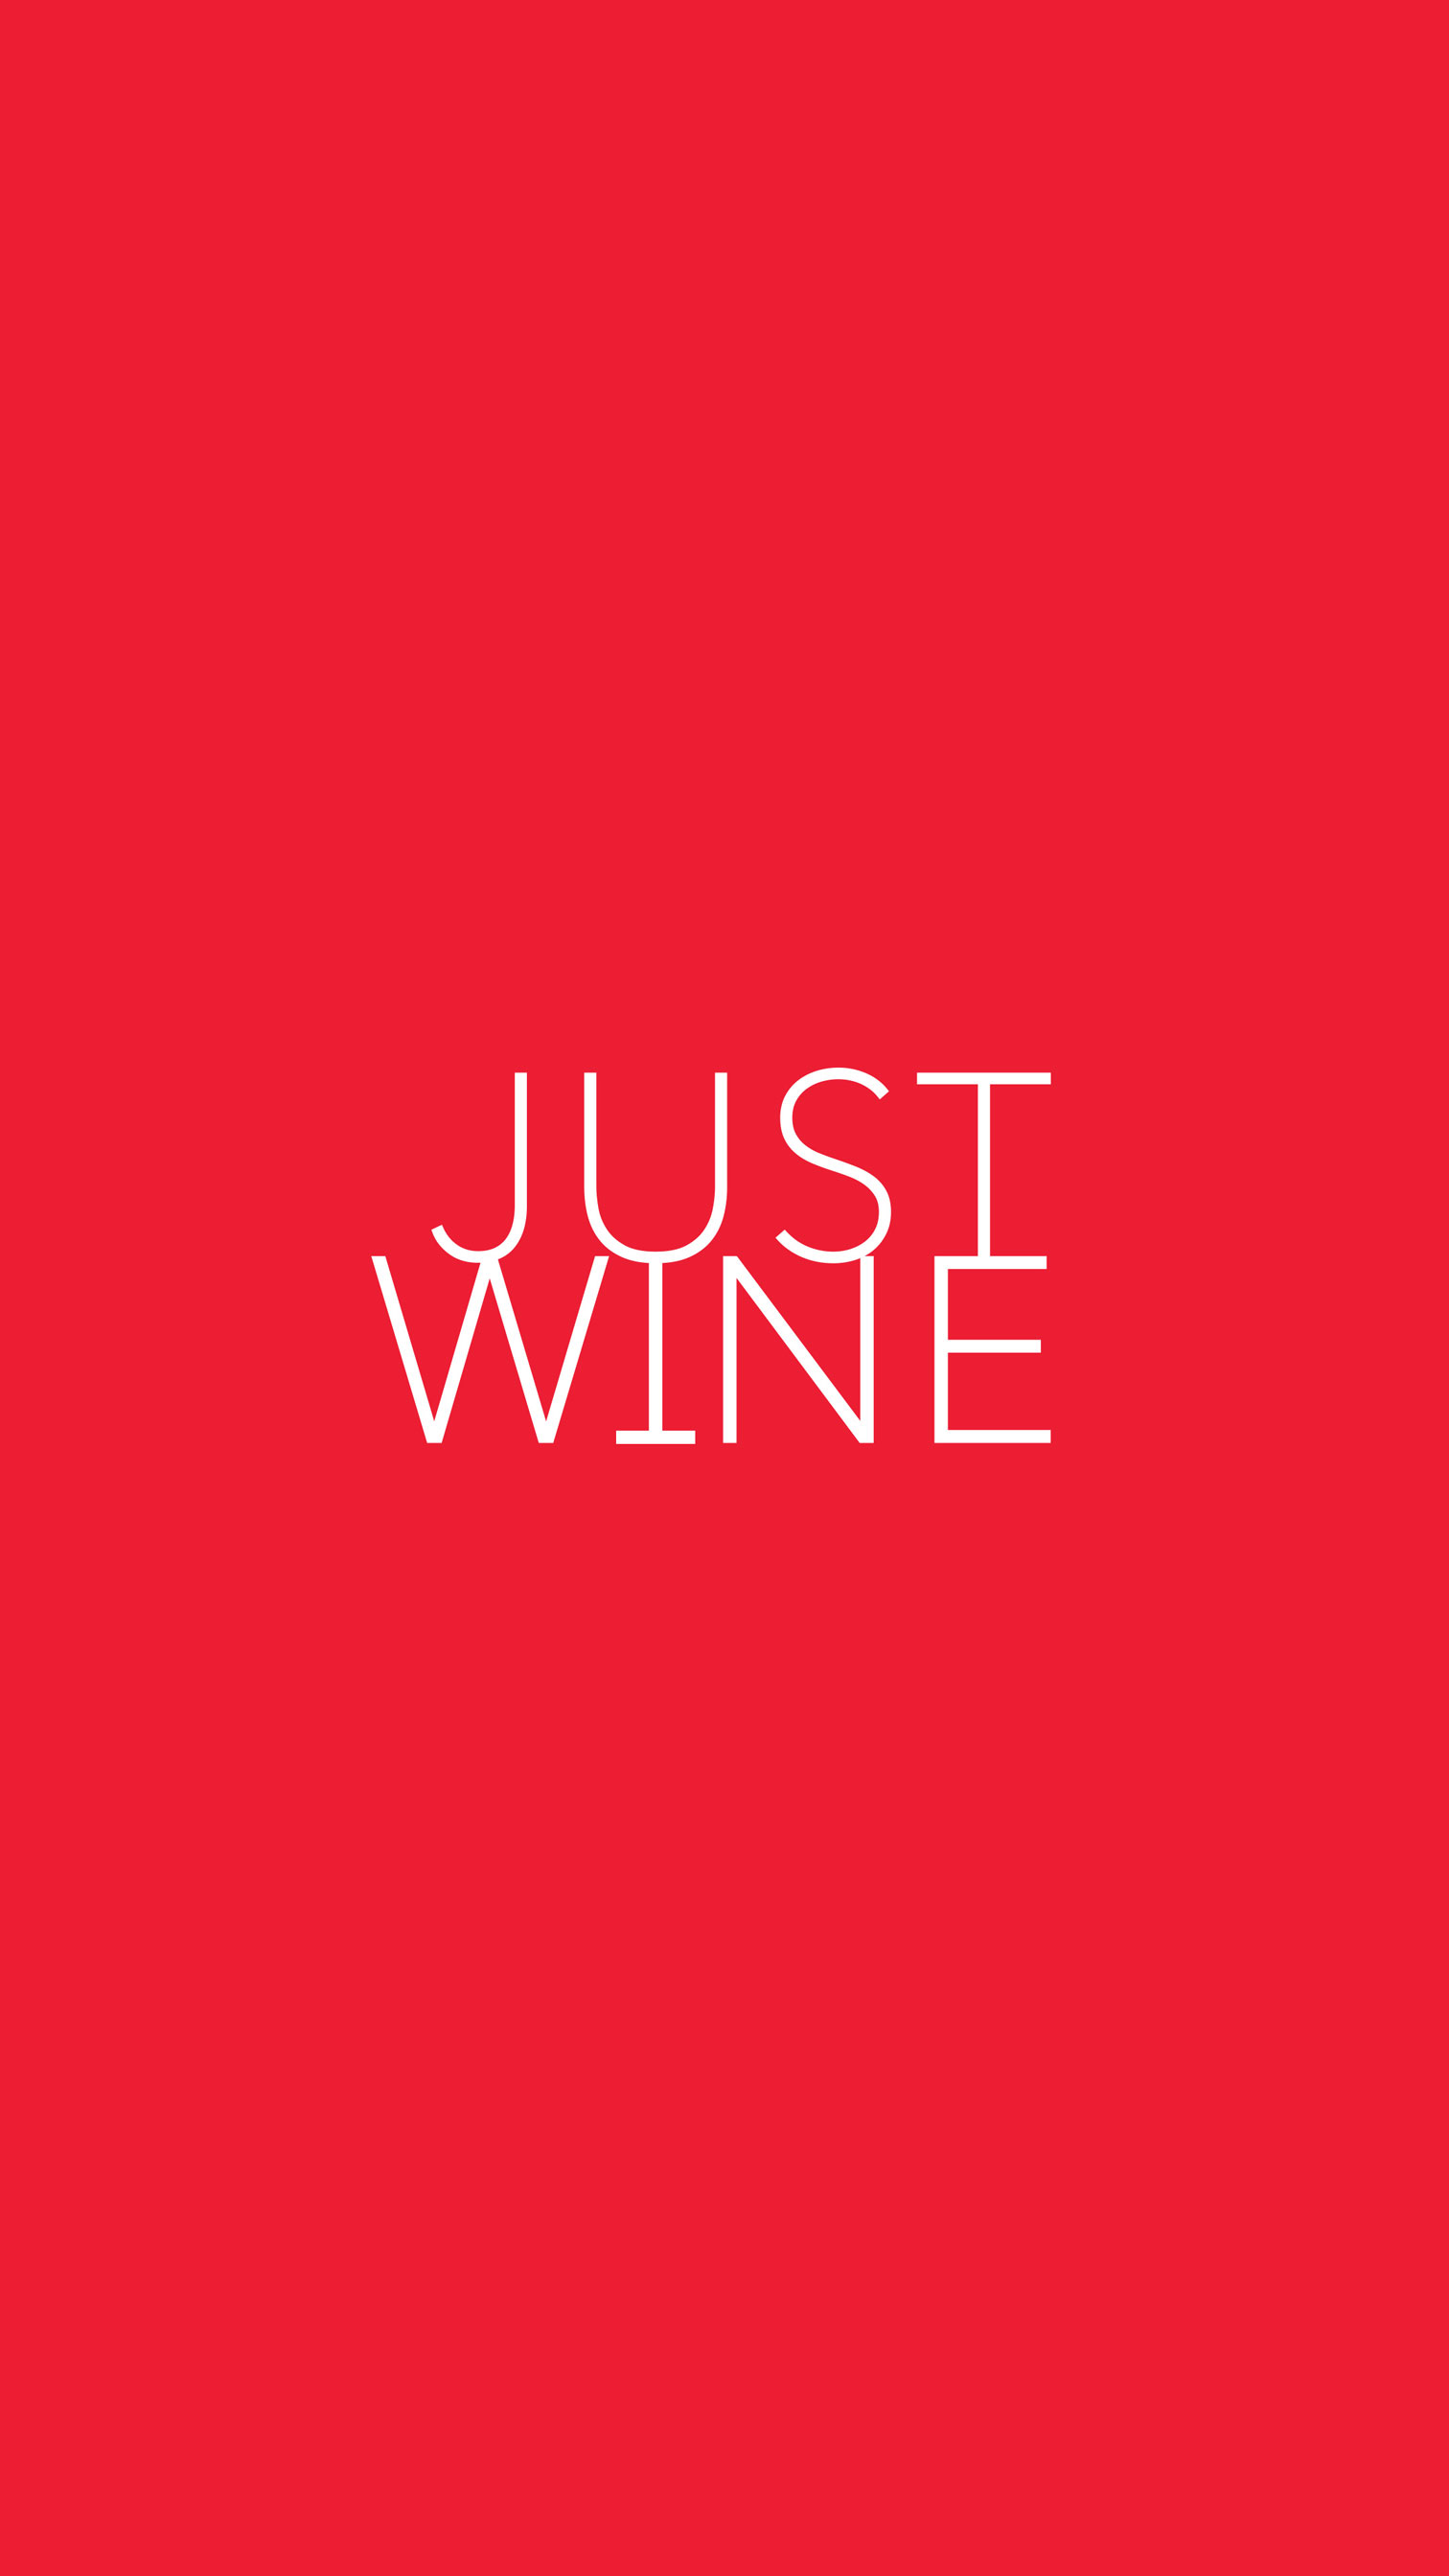 just-wine-mobile-wallpaper-android-red